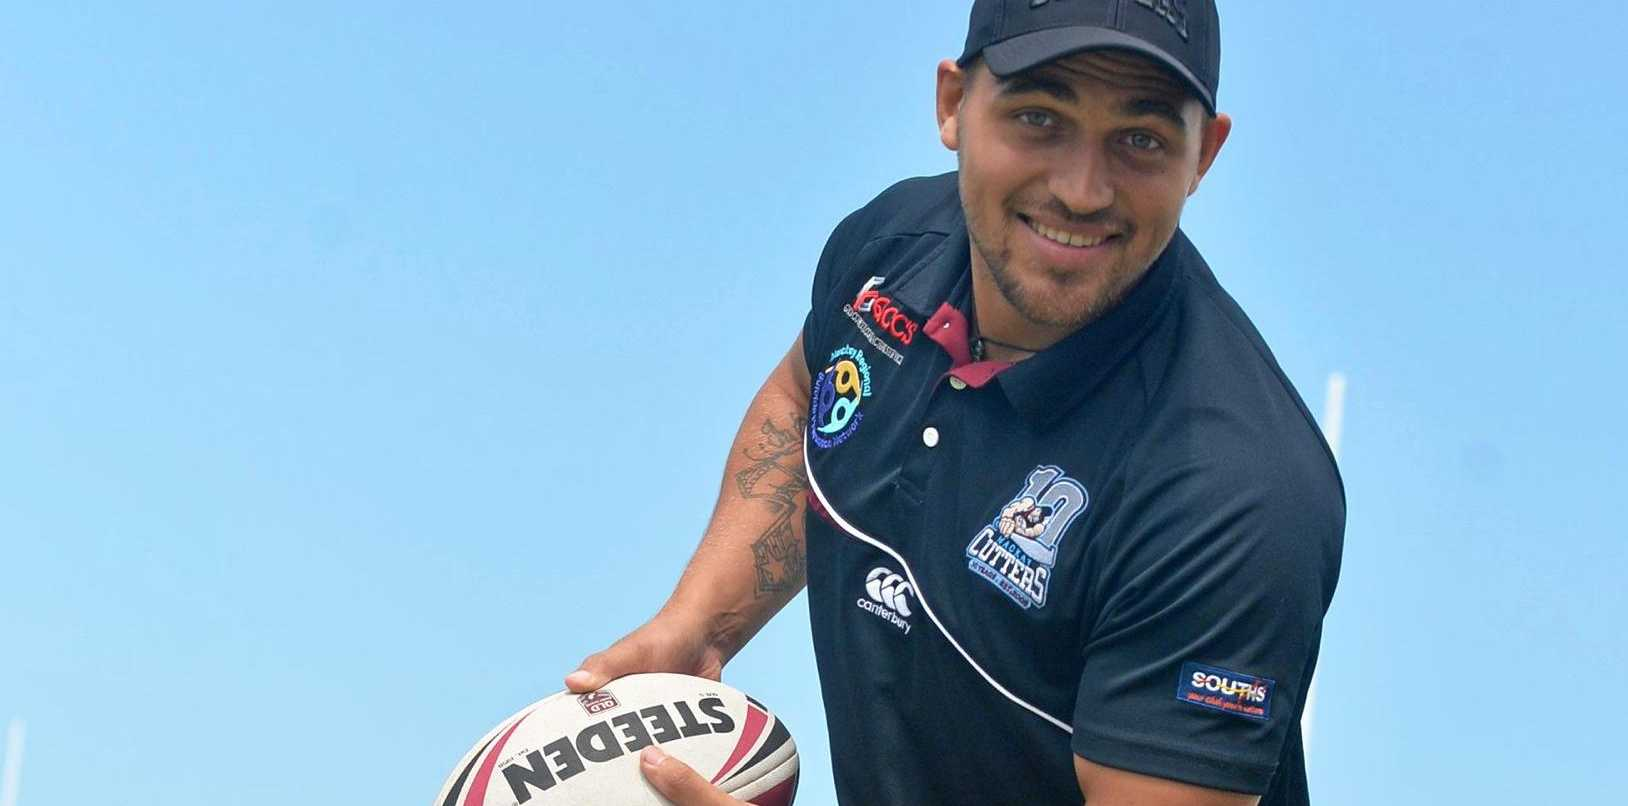 QCCS Mackay Cutters' new player, former NZ Warriors junior and NSW Cup player Kouma Samson, is looking forward to his first game on Saturday.